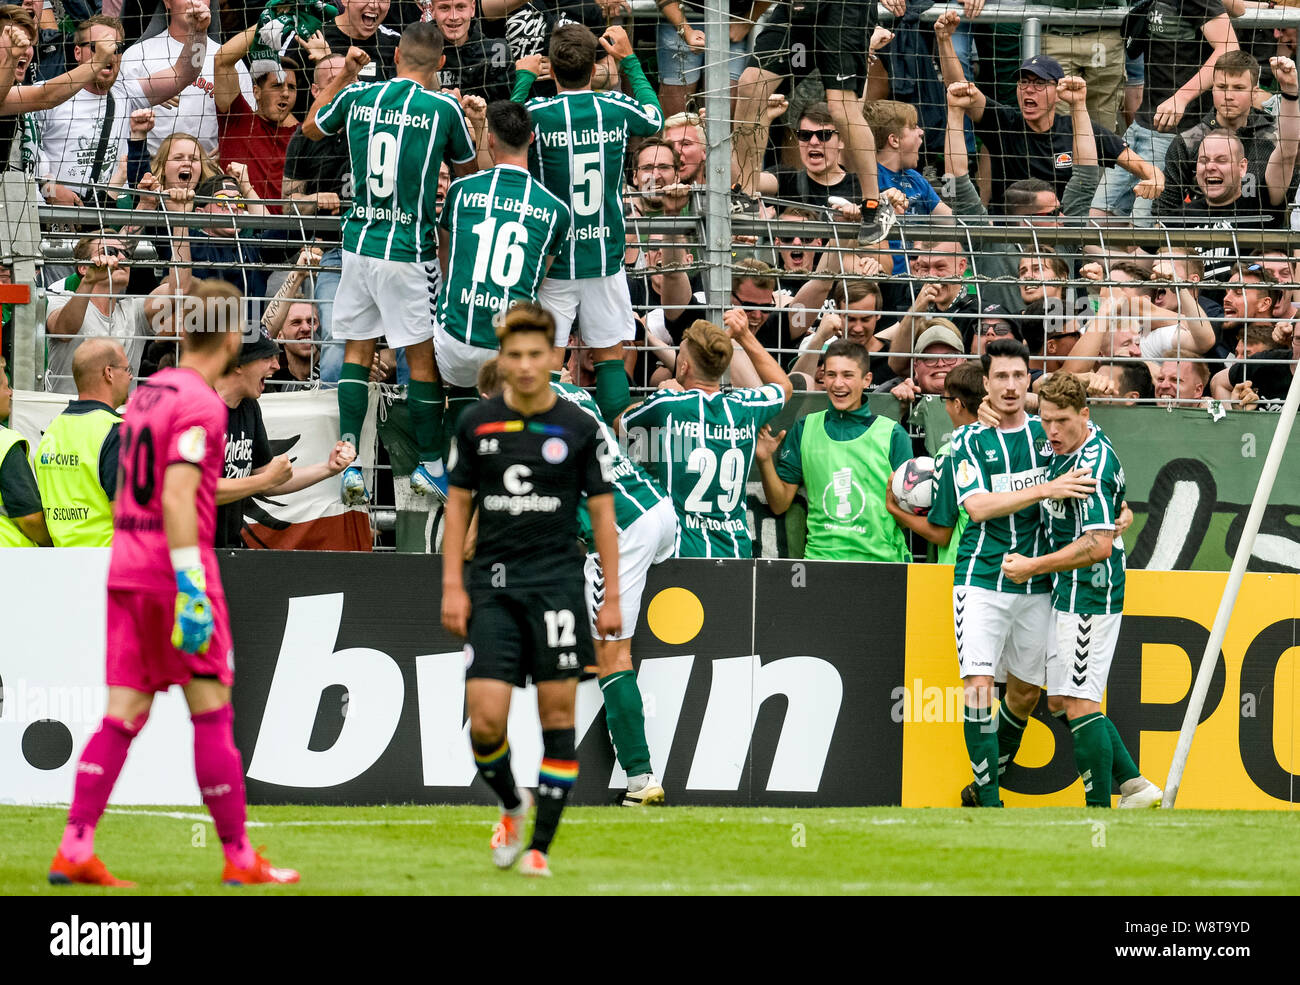 11 August 2019 Schleswig Holstein Lubeck Soccer Dfb Cup Vfb Lubeck Fc St Pauli 1st Round Lubeck S Players Celebrate The Goal To 3 3 Photo Axel Heimken Dpa Important Note In Accordance With